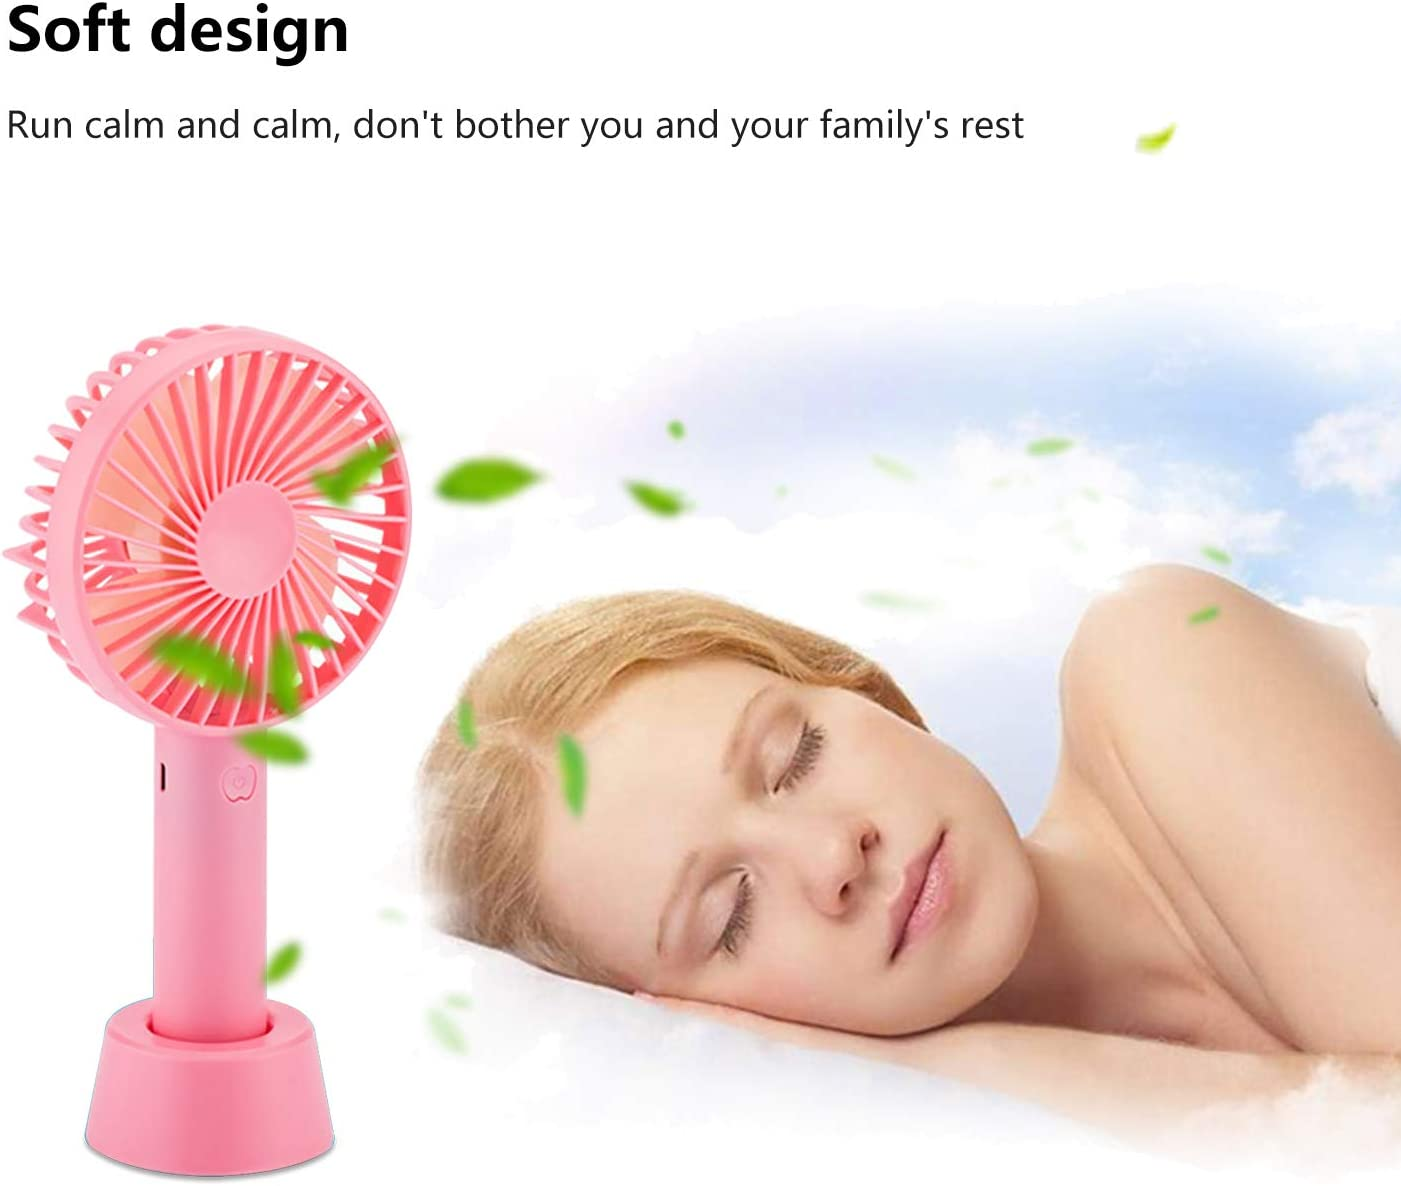 Baokai Mini Handheld Fan Portable Desk Table Fan 3 Speeds Adjustable Low Noise Cooling USB Rechargeable Battery Personal Small Fresh Fan with Removable Base for Home Office Outdoor Travel